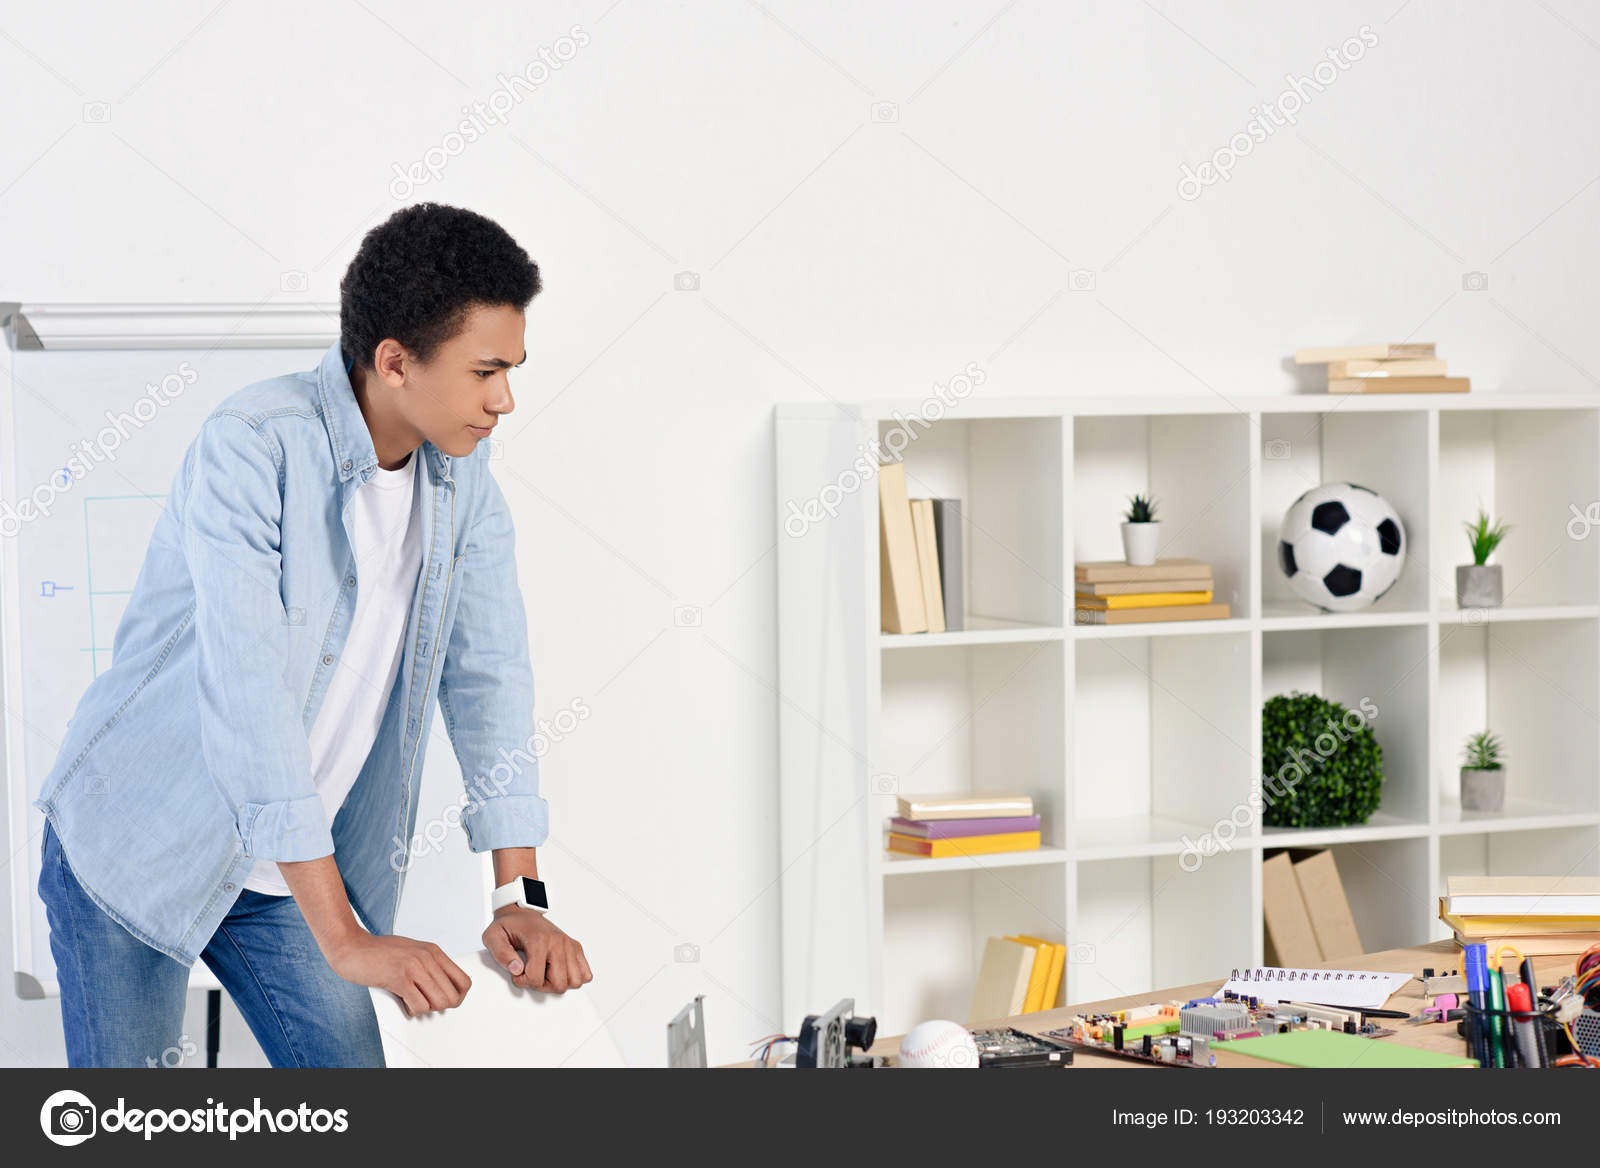 African American Teenager Leaning Chair Looking Table Technical Equipment Home u2014 Stock Photo  sc 1 st  Depositphotos & African American Teenager Leaning Chair Looking Table Technical ...